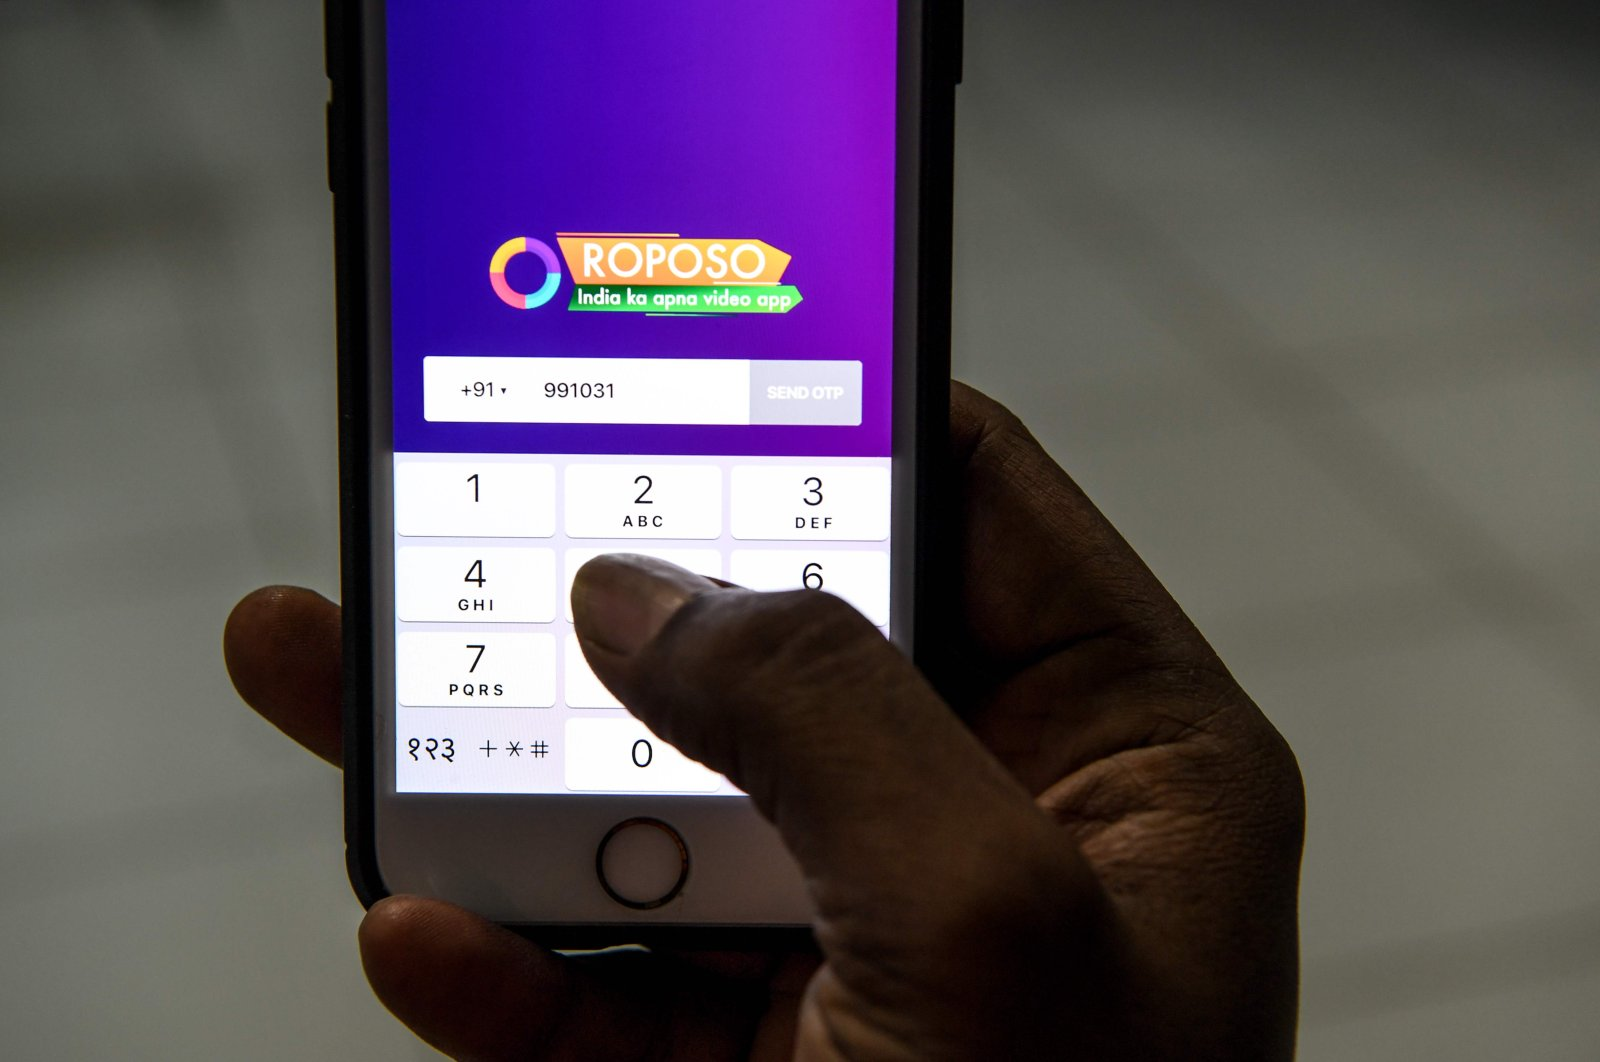 A man uses the Indian app platform Roposo on a mobile phone in New Delhi, July 2, 2020. (AFP Photo)